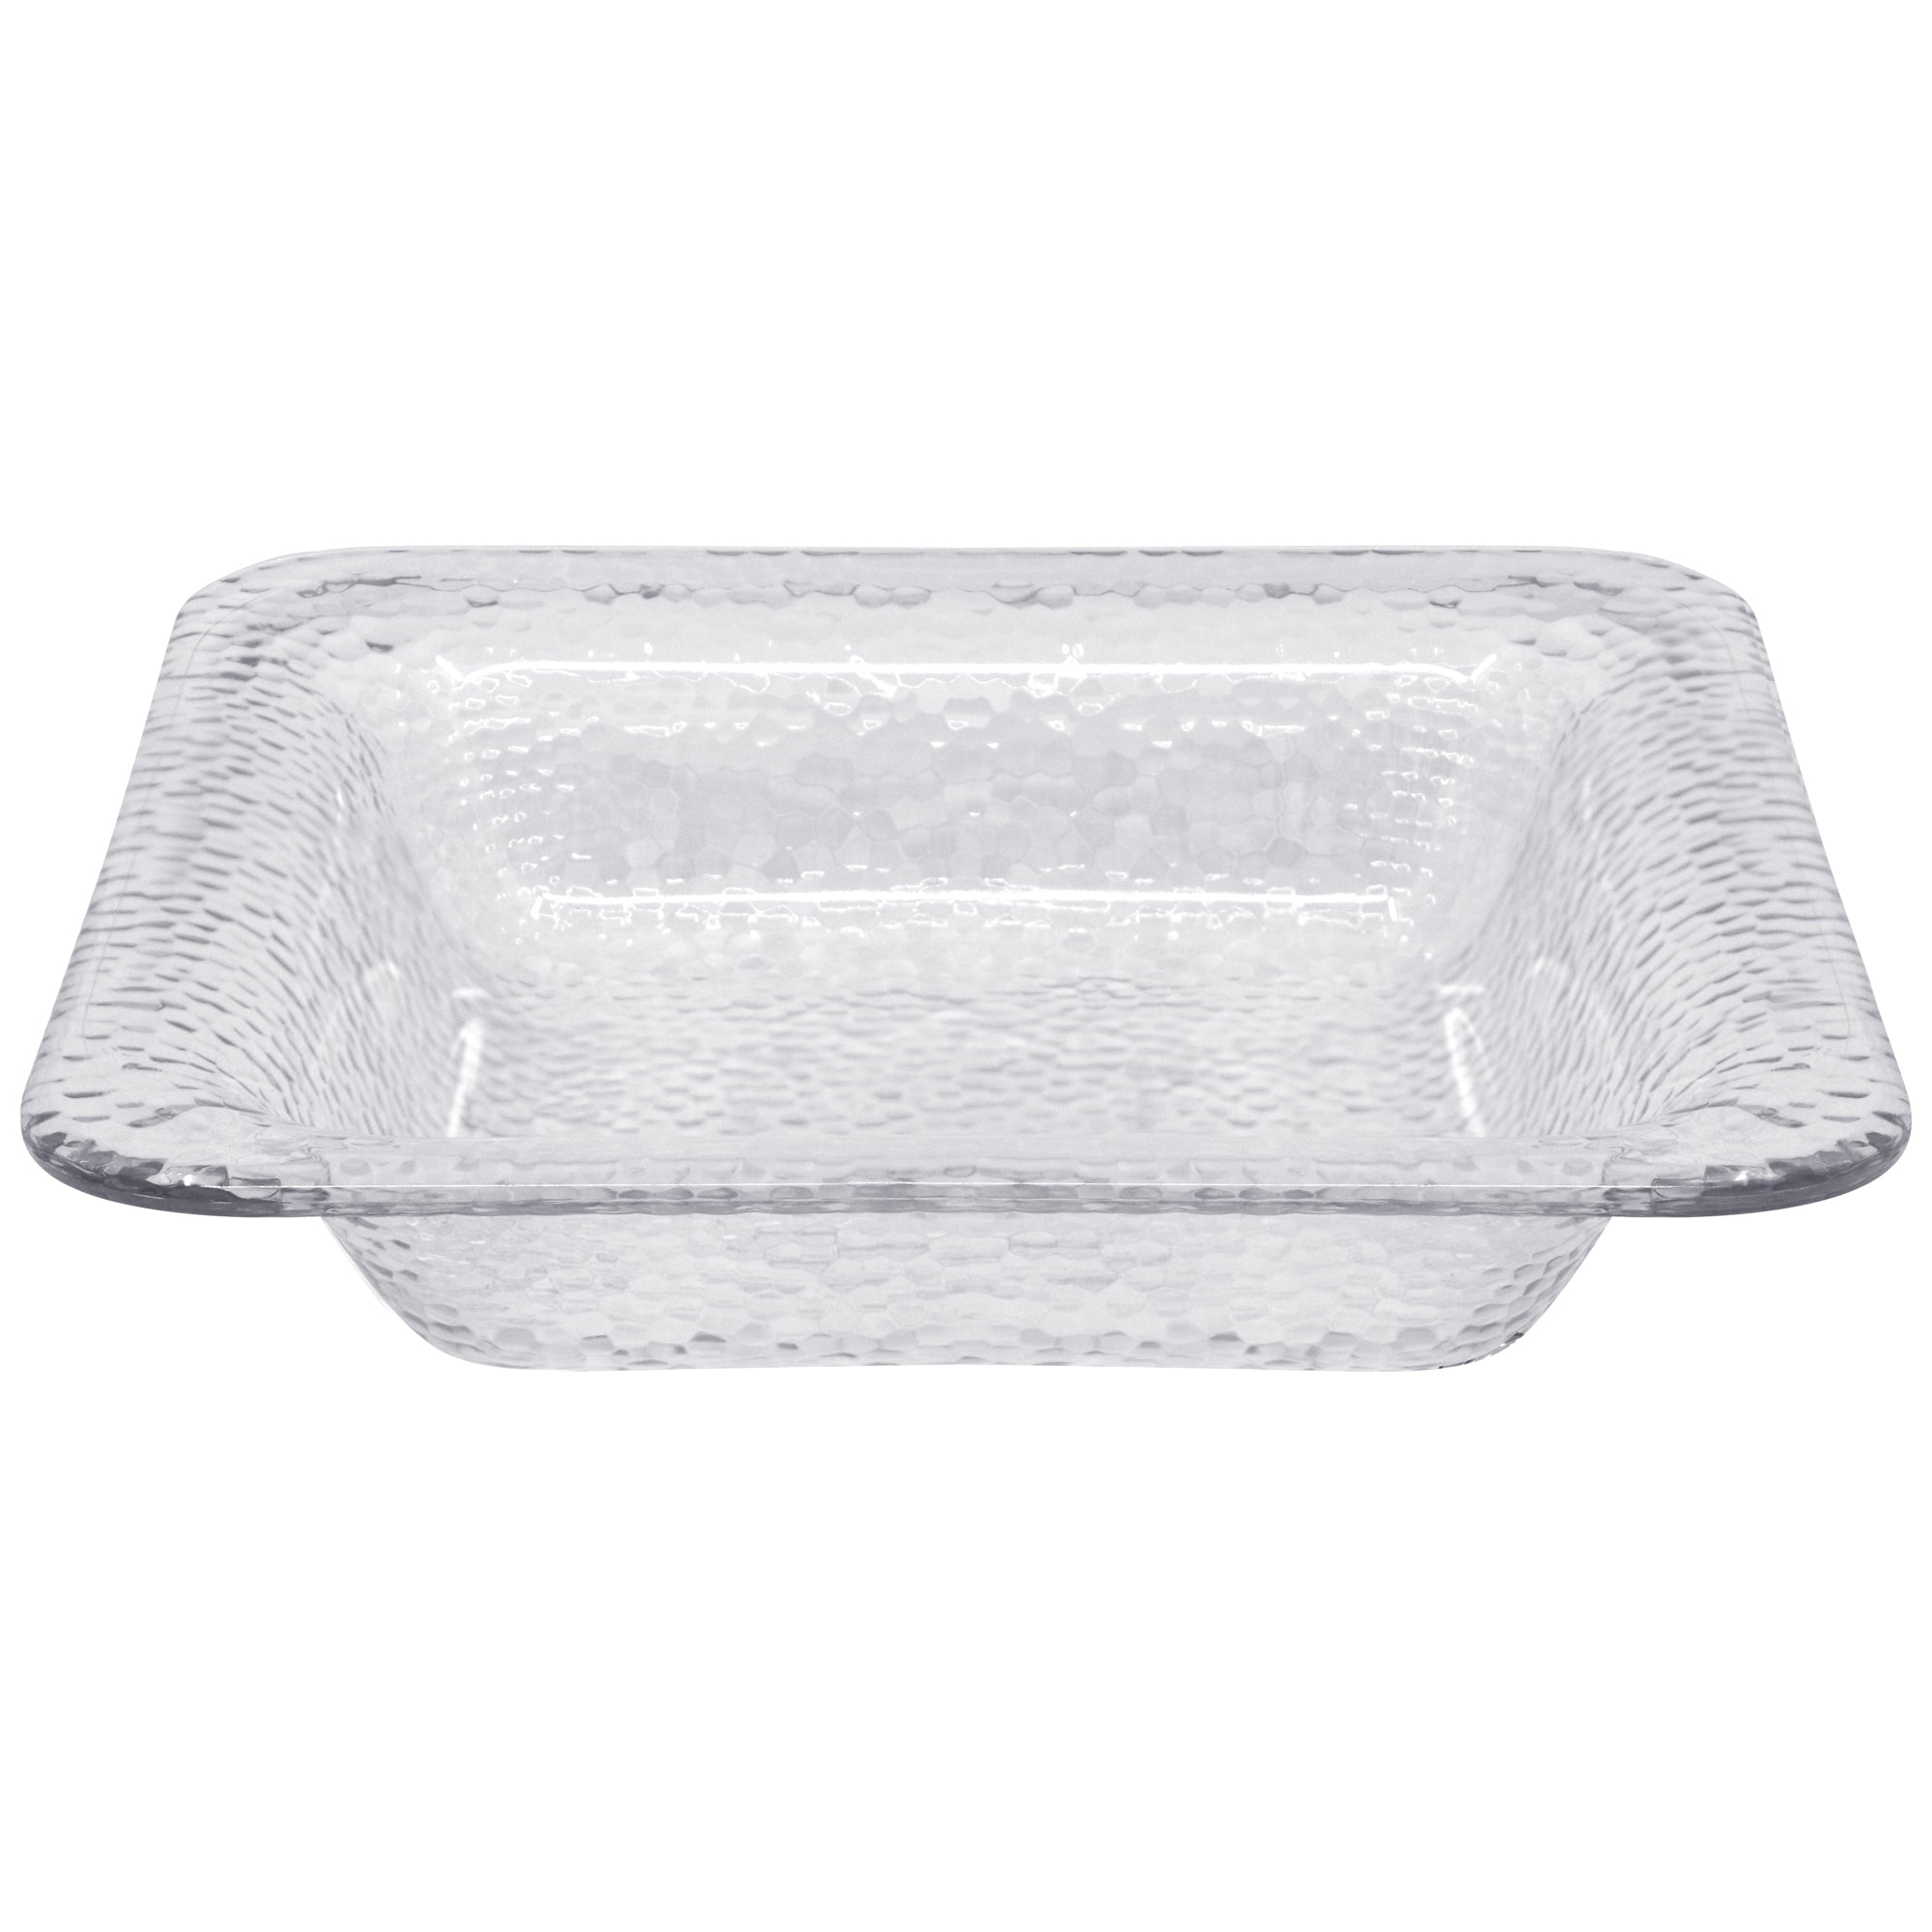 Premium Heavy Extra Weight Plastic Serving Bowl<br/>Size Options: 112 Serving Bowl and 8.5inchx12.7inch Serving Bowl